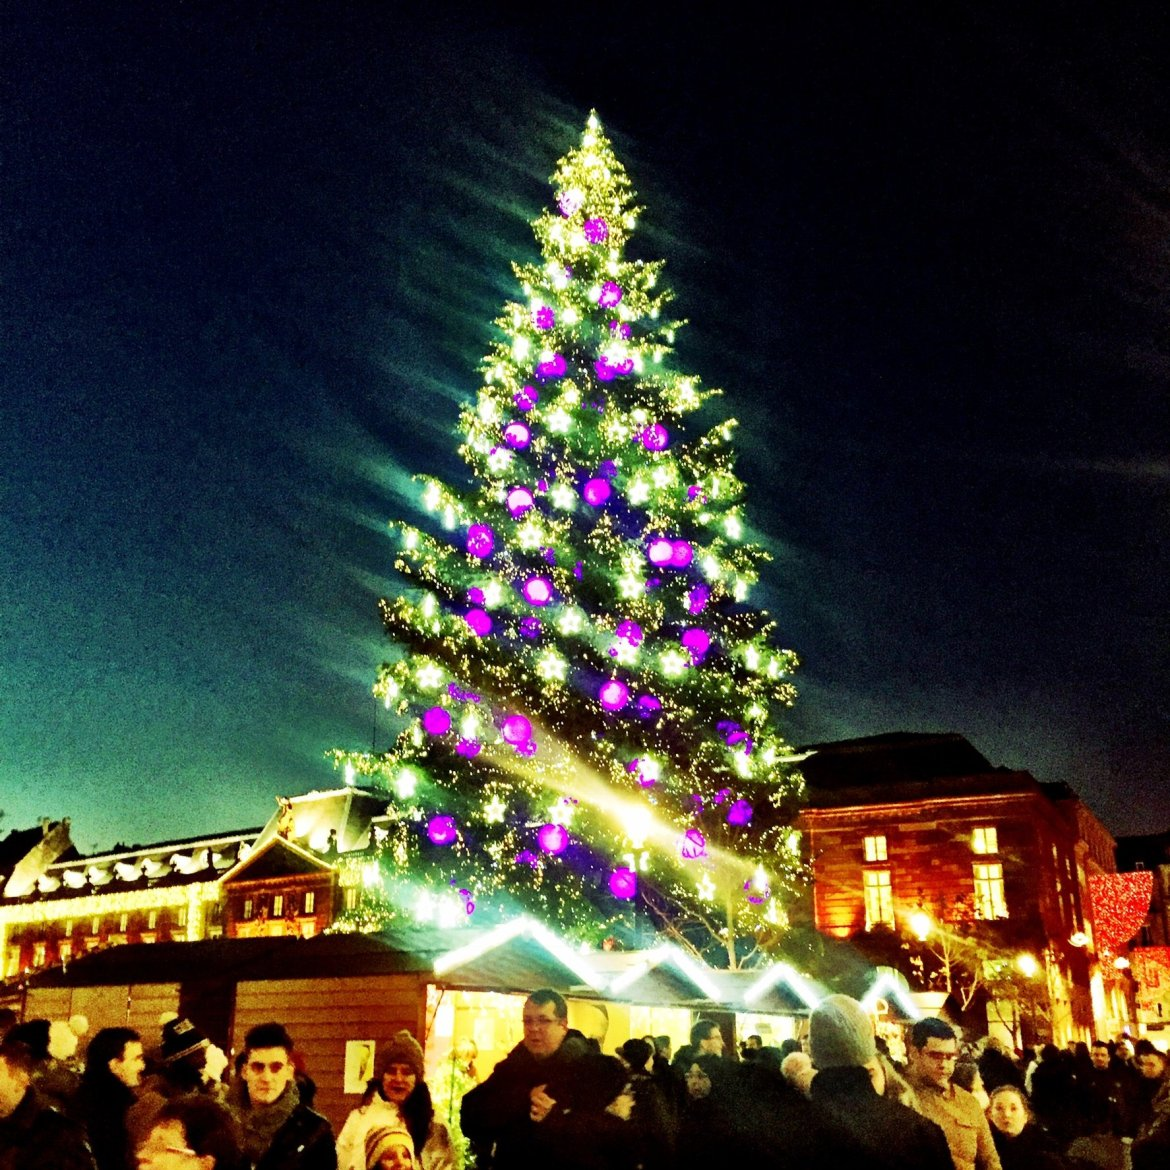 Great Christmas Tree, Place Kleber, Strasbourg